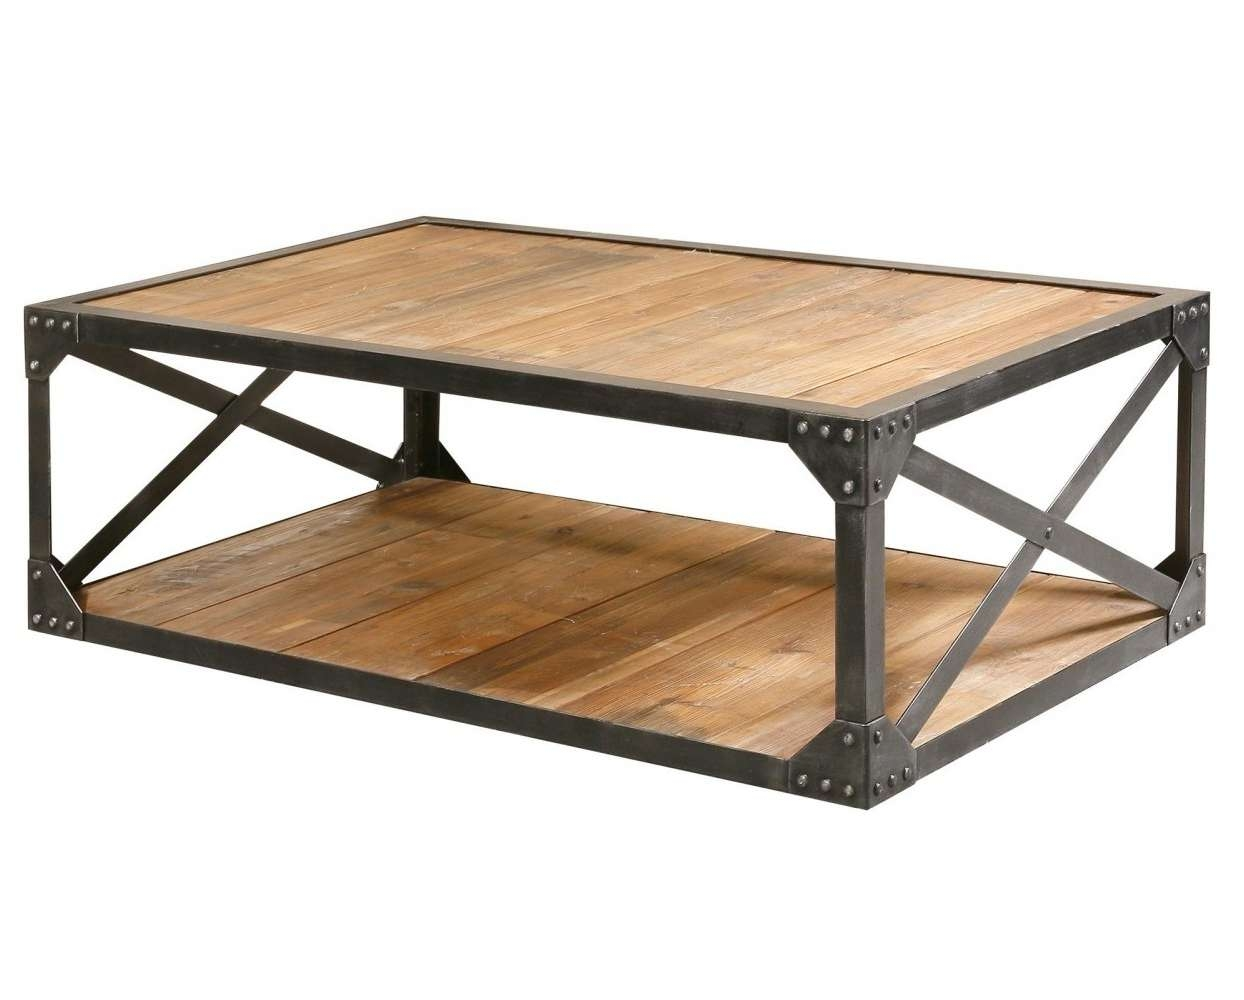 Coffee Tables : Exquisite Rustic Wooden Coffee Table Fresh Tables Pertaining To Popular Wooden Coffee Tables (Gallery 20 of 20)